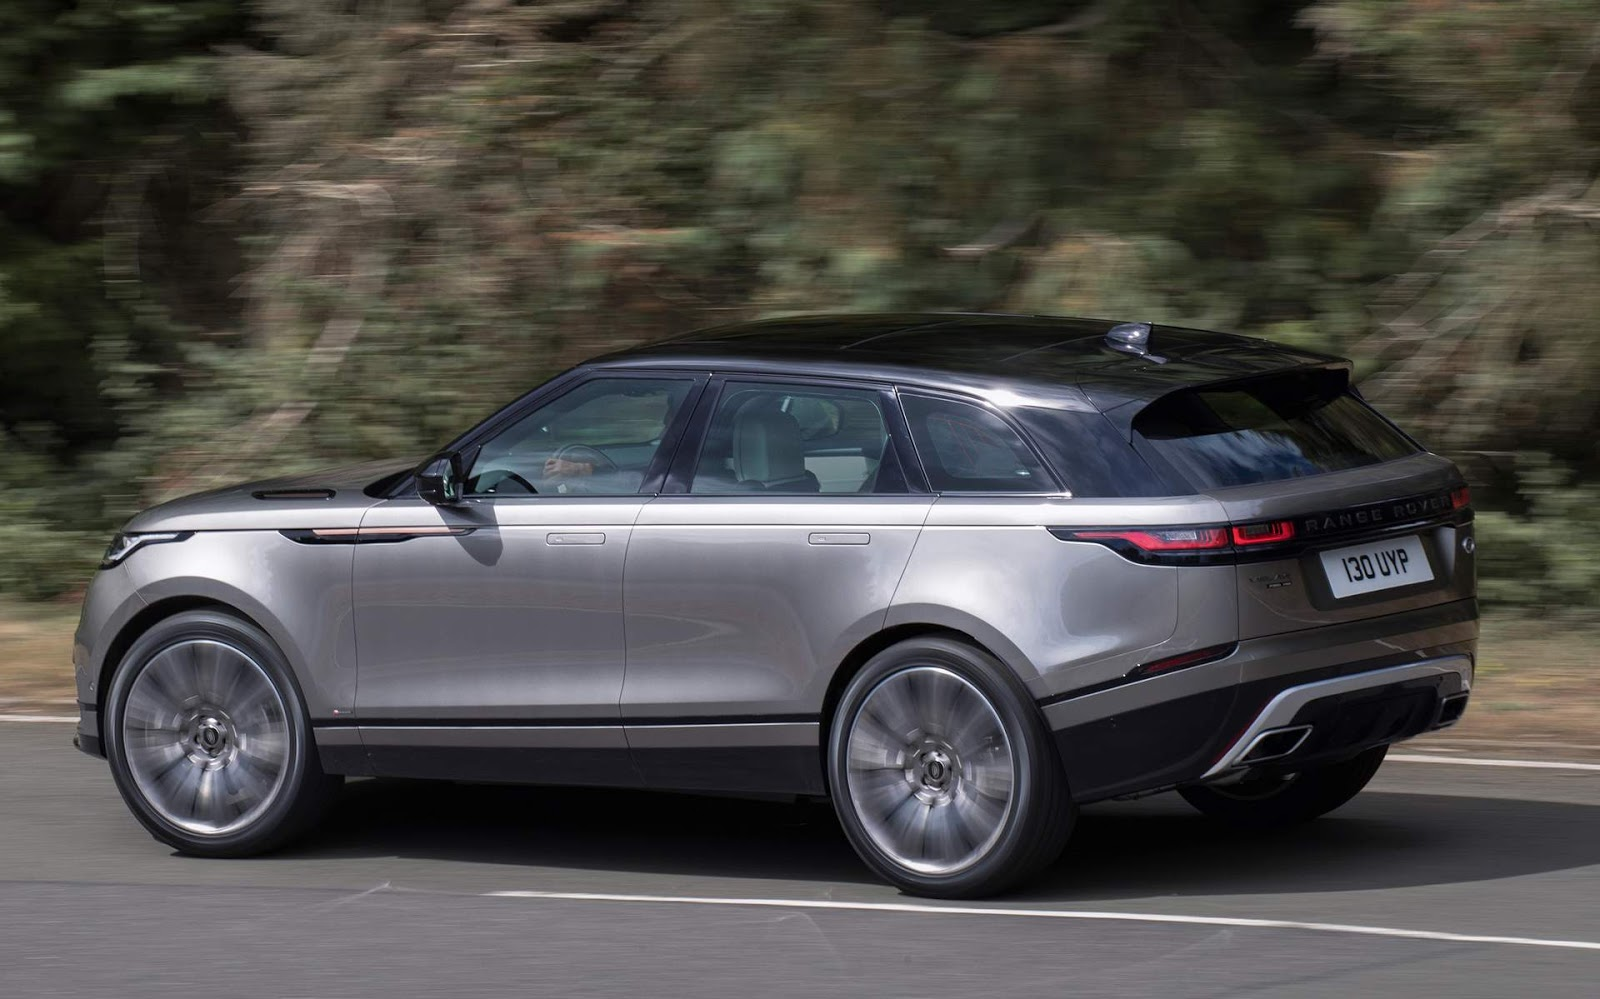 ranger rover velar fotos pre os especifica es oficiais car blog br. Black Bedroom Furniture Sets. Home Design Ideas